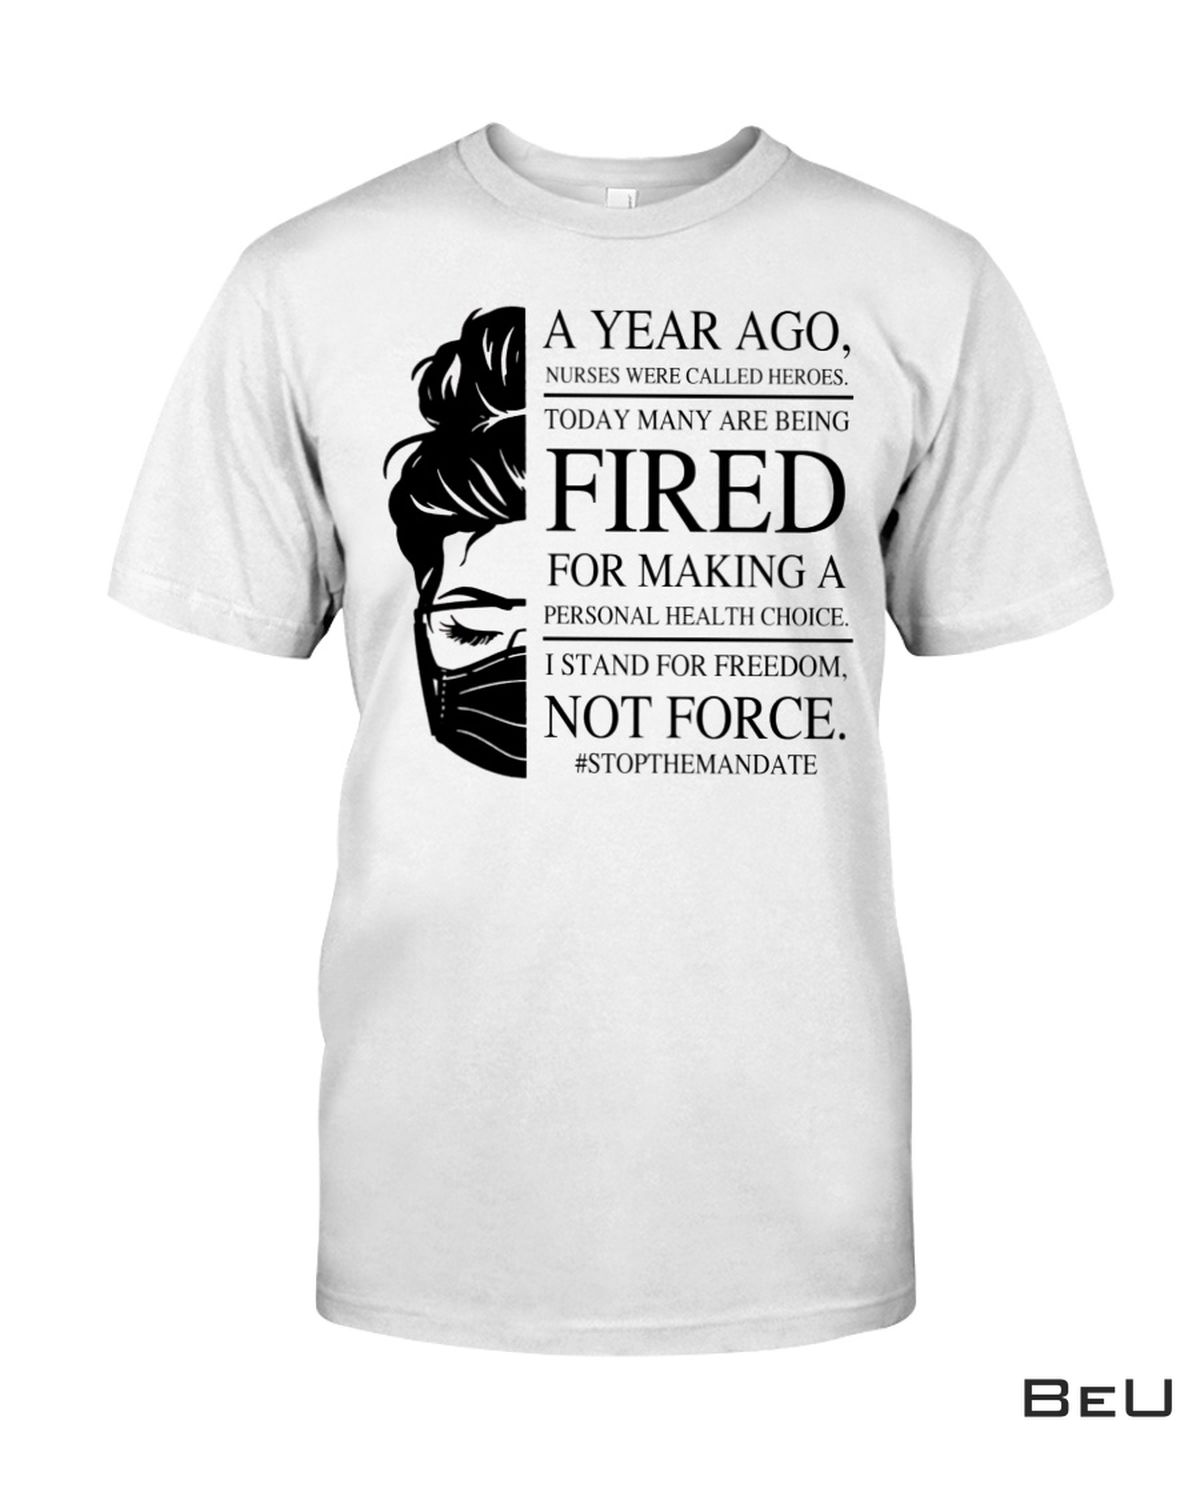 A Year Ago Nurses Were Called Heroes Today Many Are Being Fired For Making A Personal Health Choice Shirt, hoodie, tank top